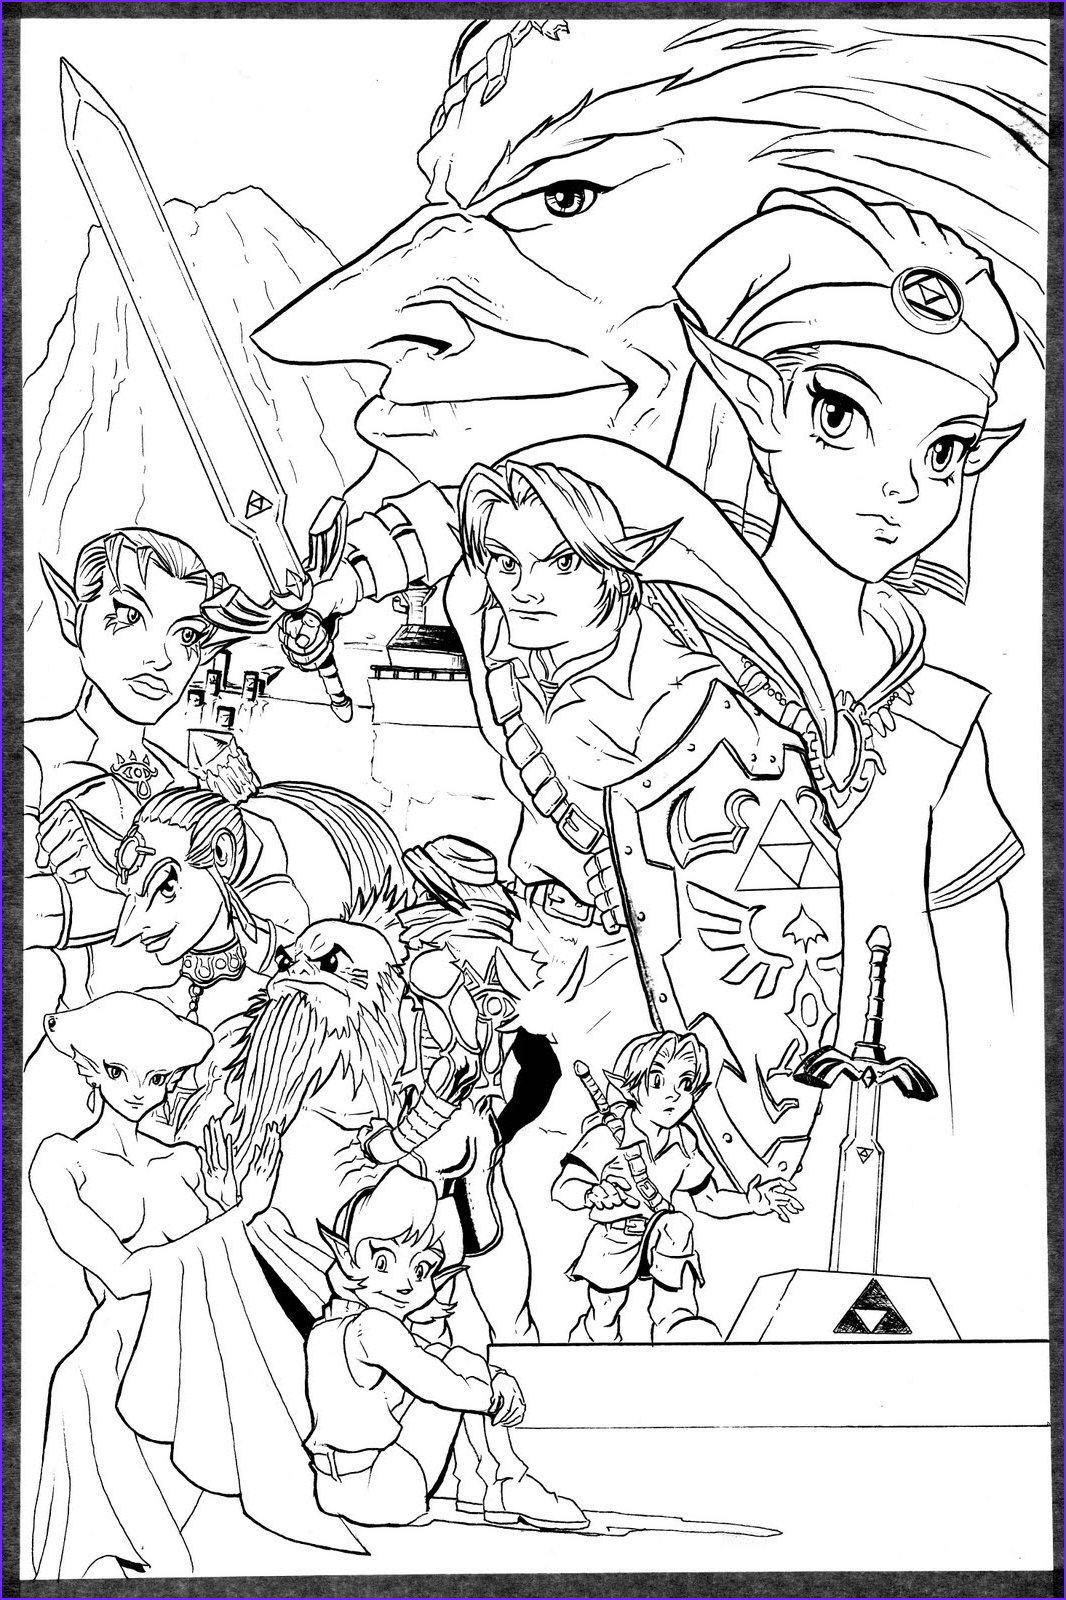 Link Coloring Pages Cool Collection Adam B Carabet the Legend Of Zelda Ocarina Of Time B&w